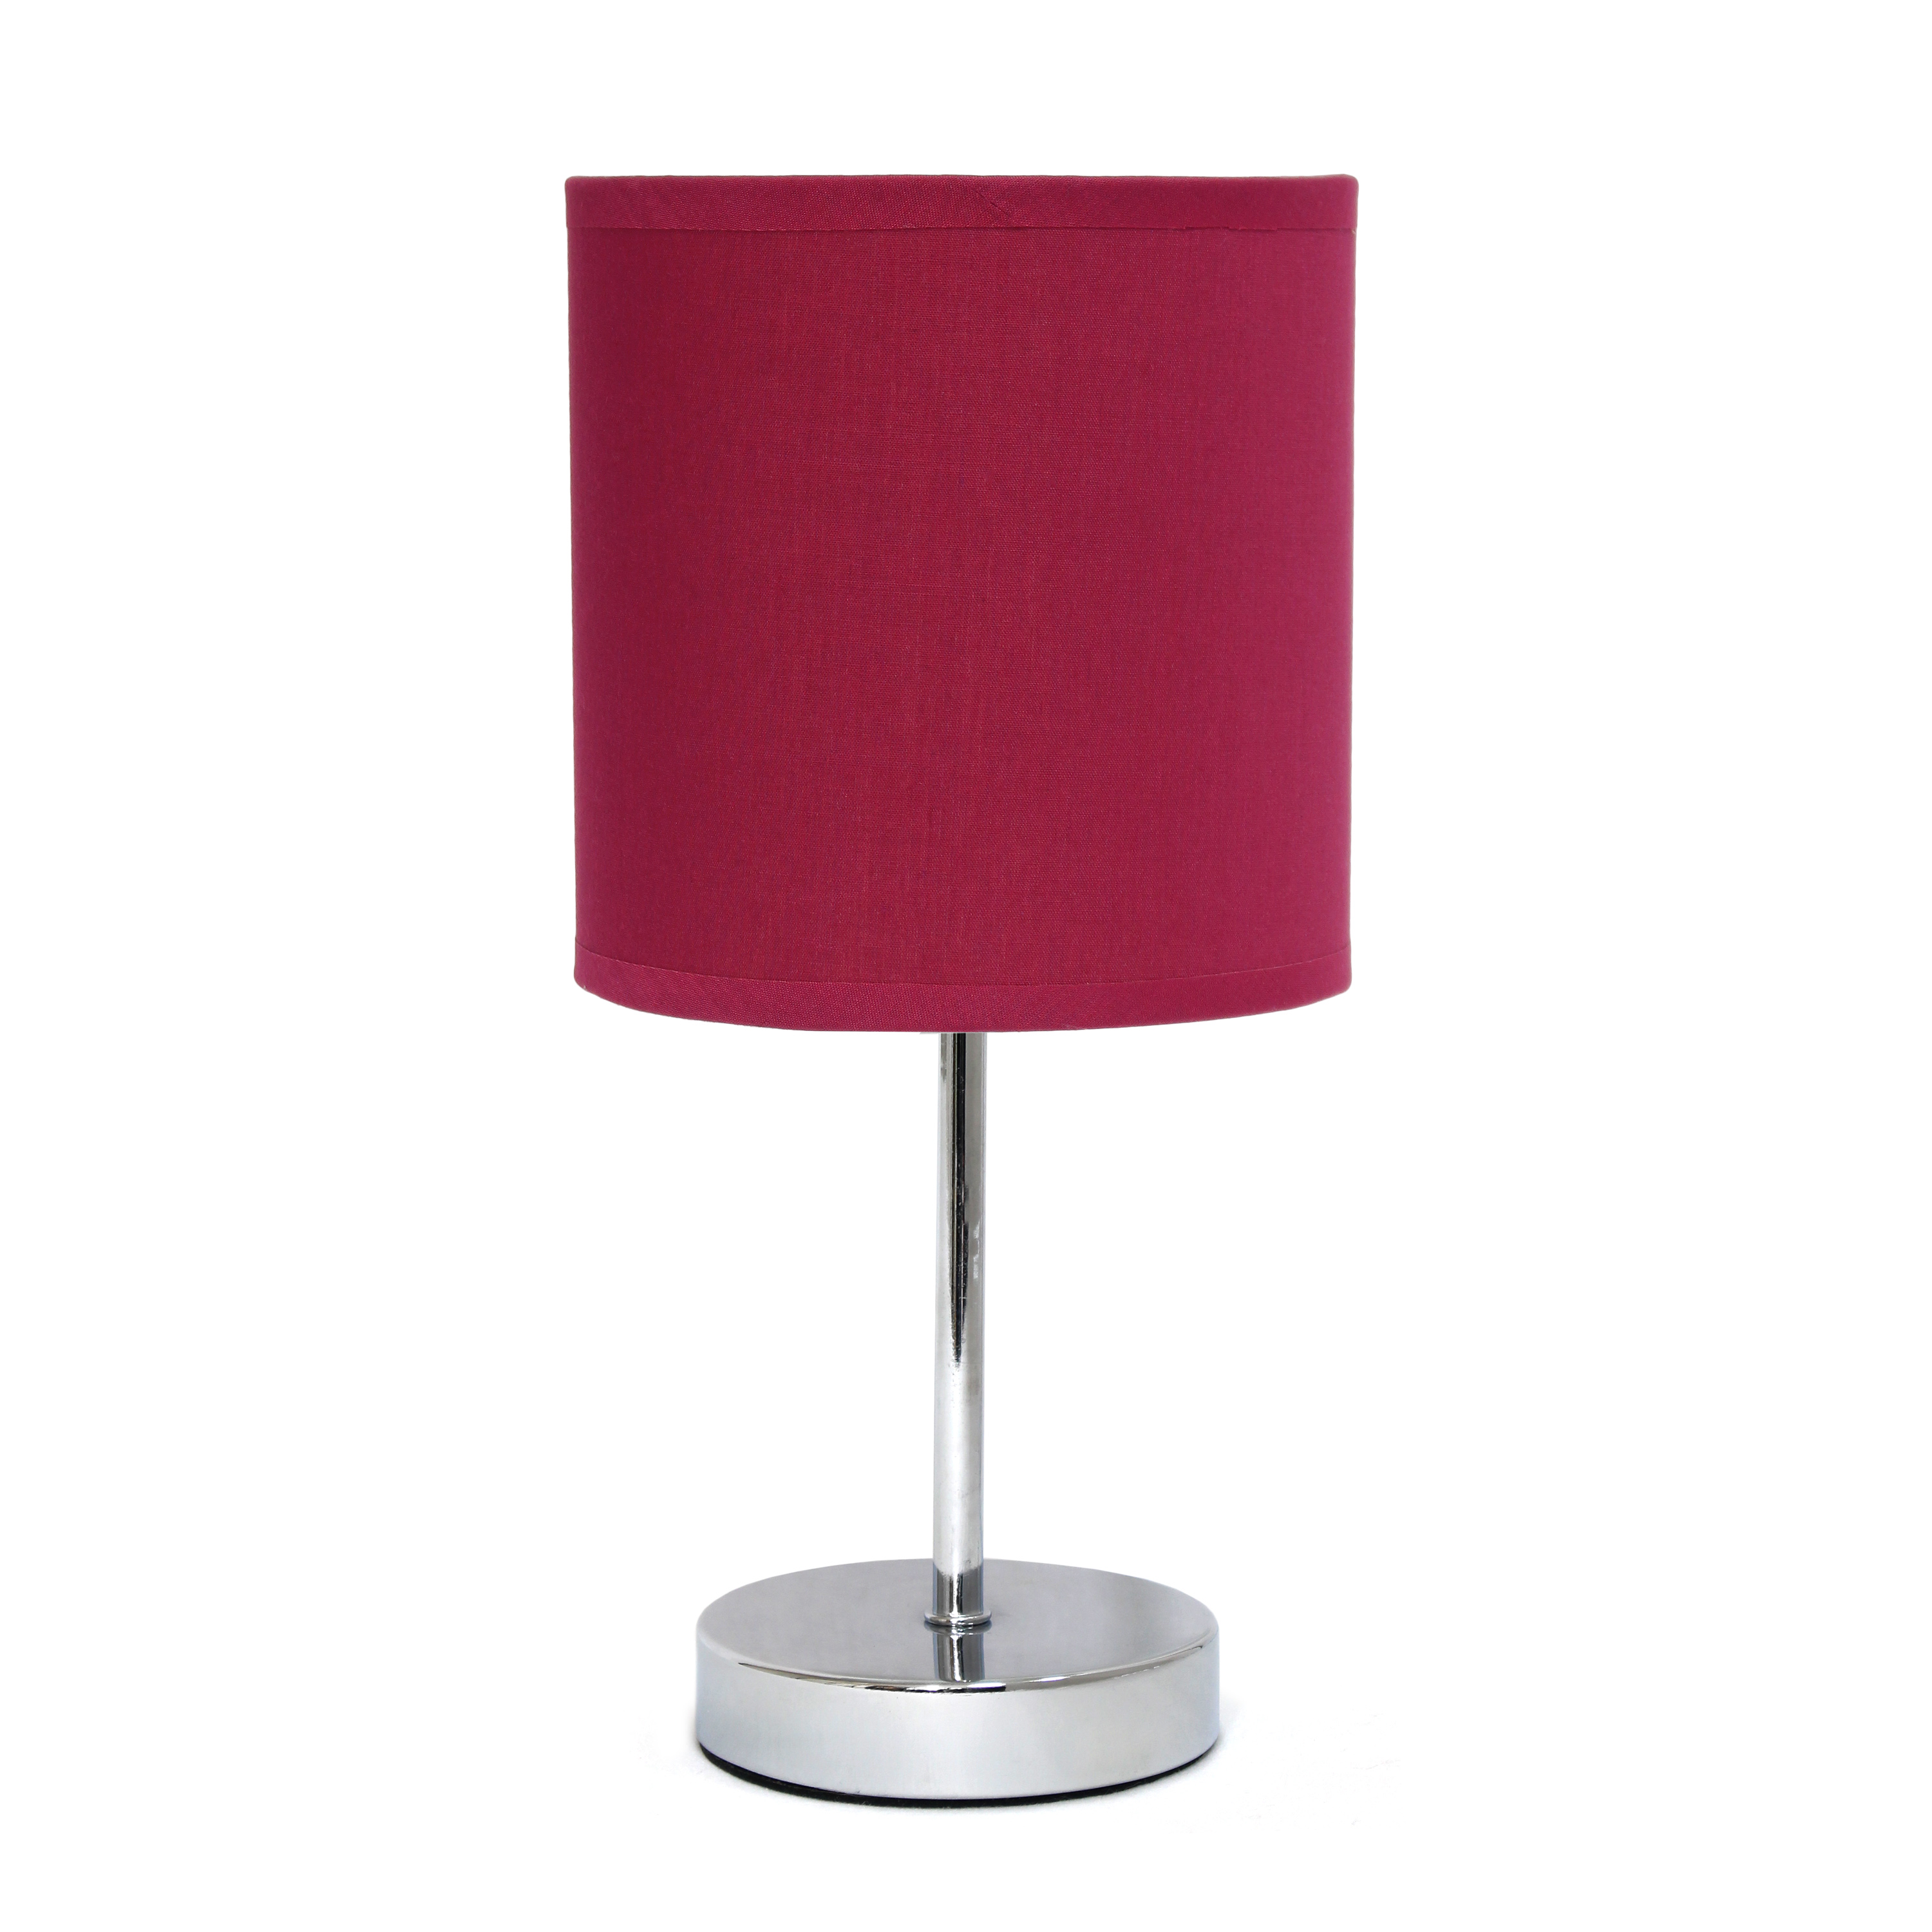 Simple Designs Chrome Mini Basic Table Lamp with Fabric Shade, Wine